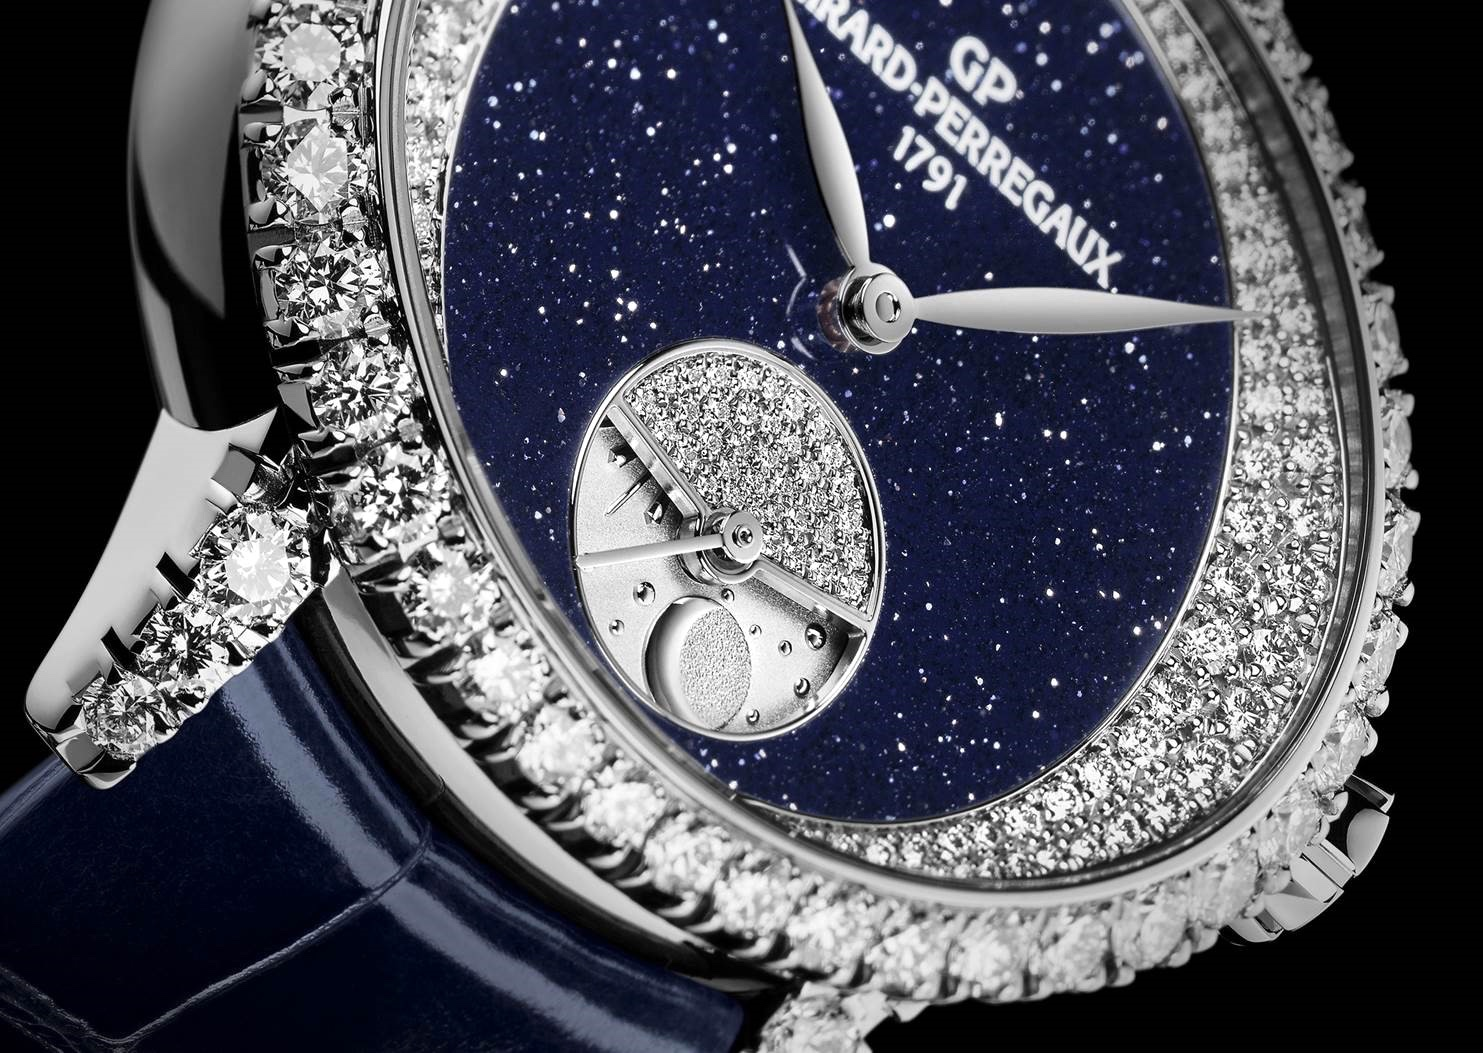 Girard-Perregaux Cats Eye Day and Night High Jewellery SIHH 2018